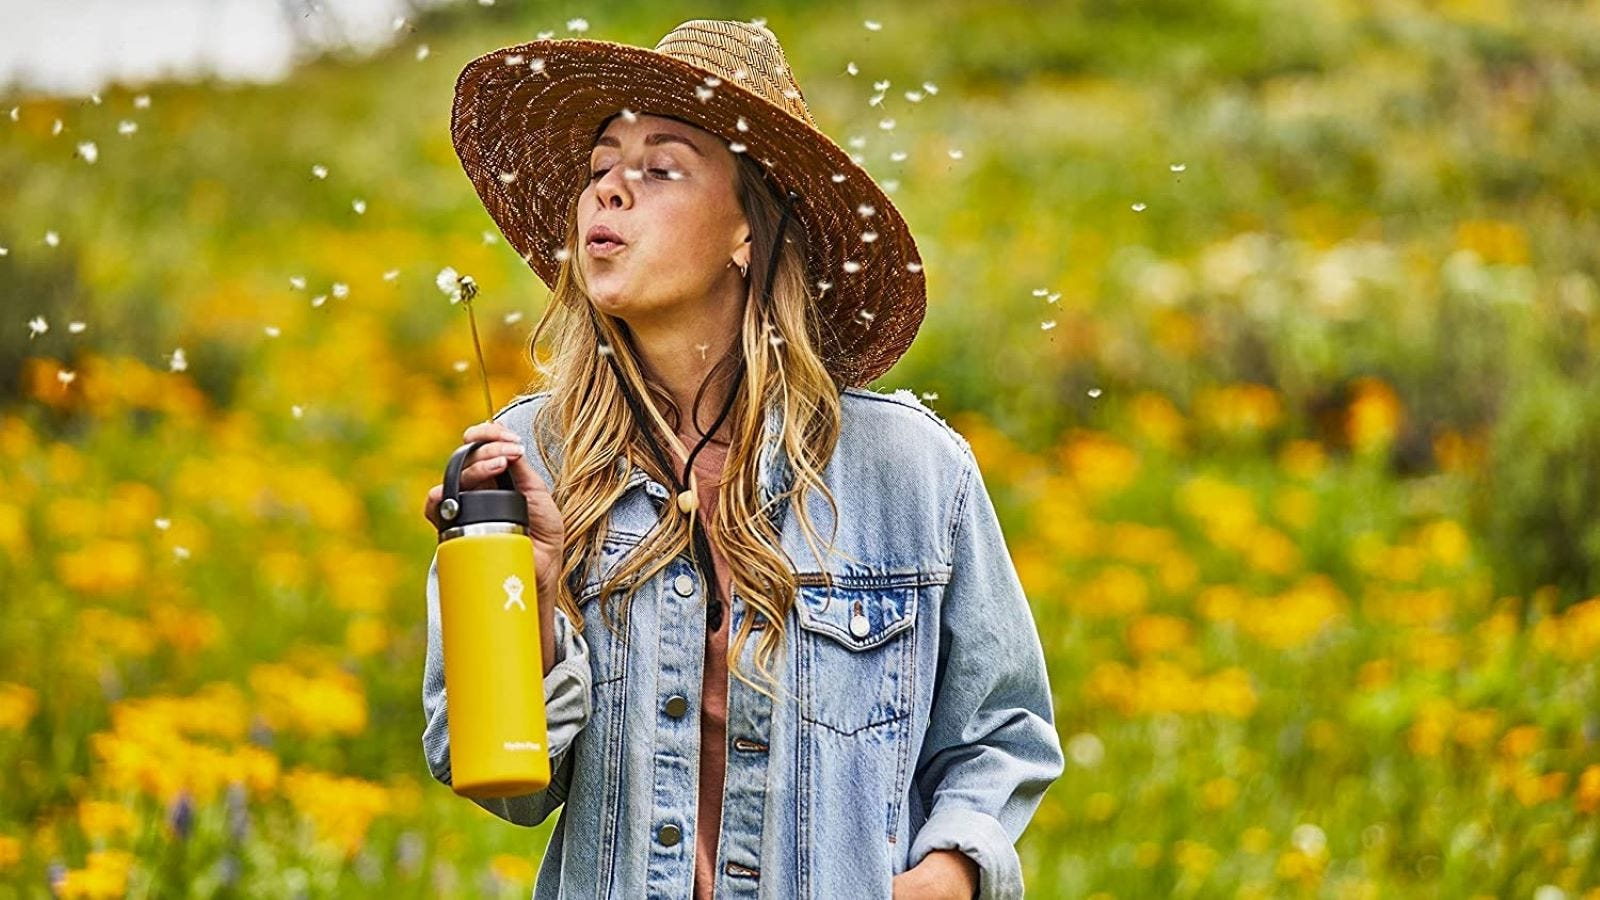 A woman blowing on a dandelion flower in a field while carrying a yellow Hydro Flask.